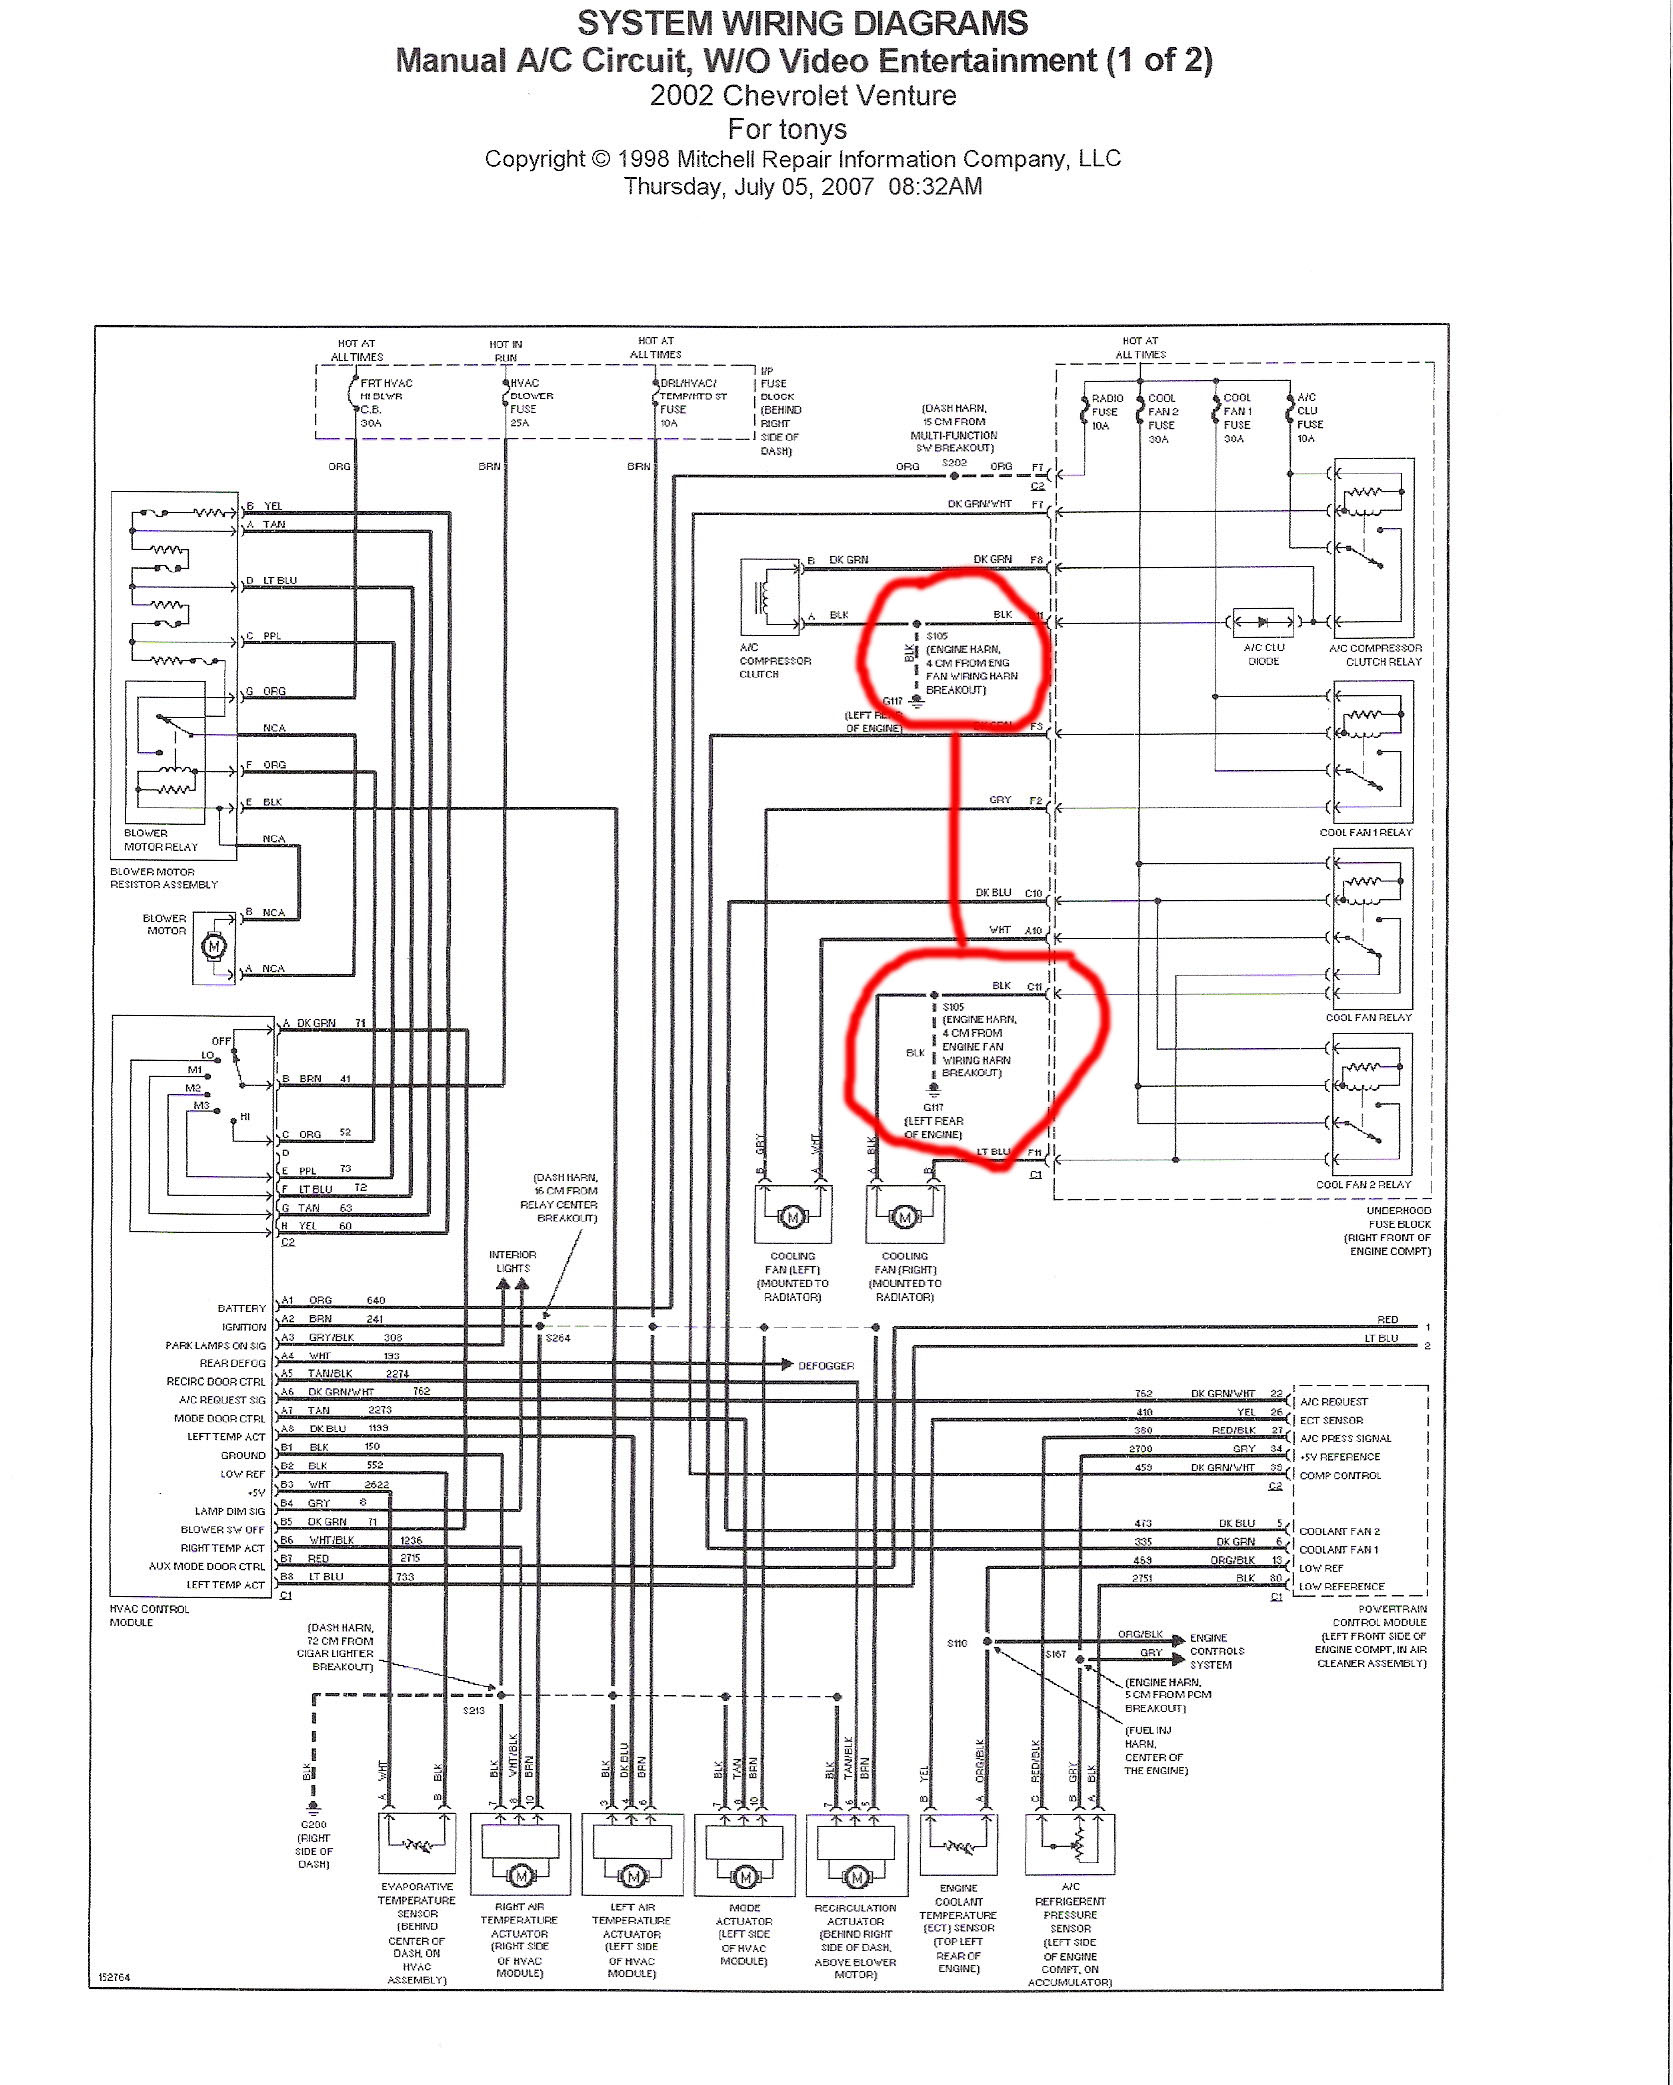 62 chevy impala wiring diagram 03 chevy venture wiring diagram html - imageresizertool.com 03 chevy impala wiring diagram #15